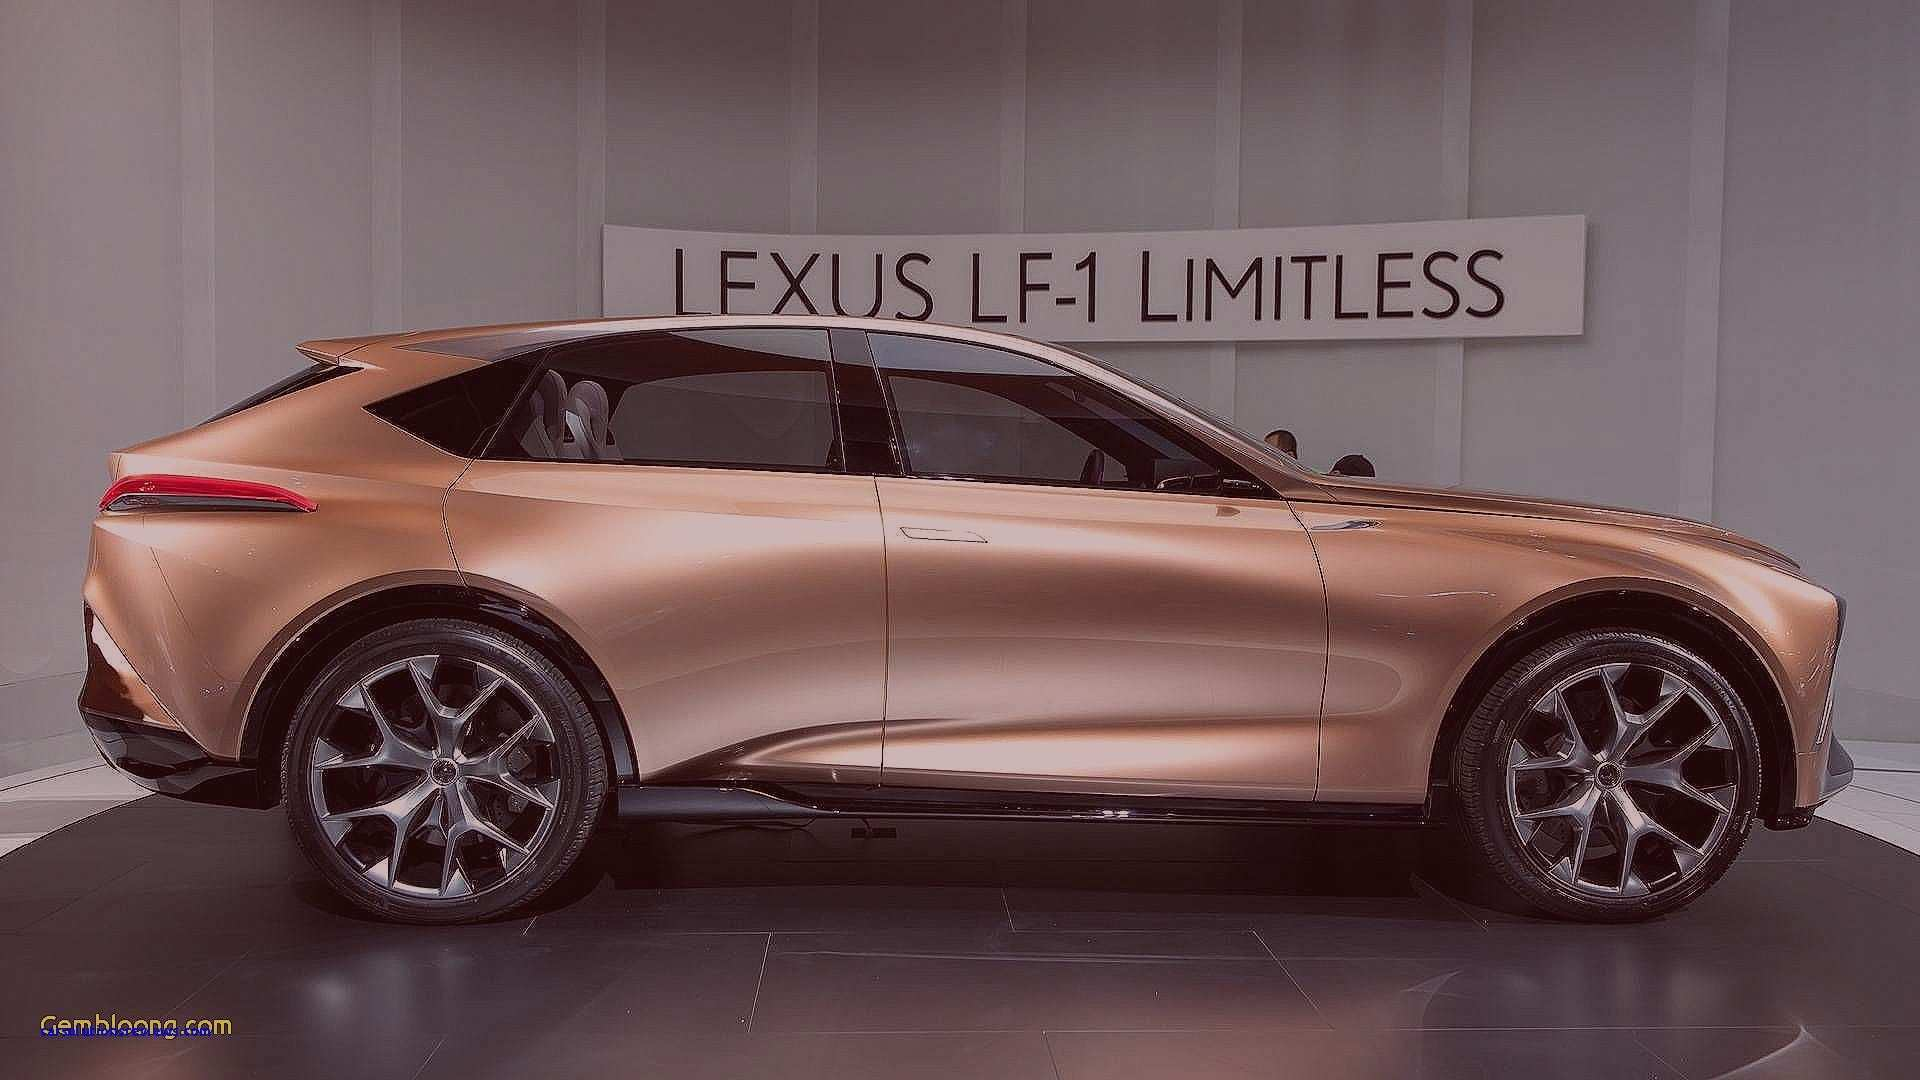 55 All New 2020 Lexus Ux Exterior Concept by 2020 Lexus Ux Exterior